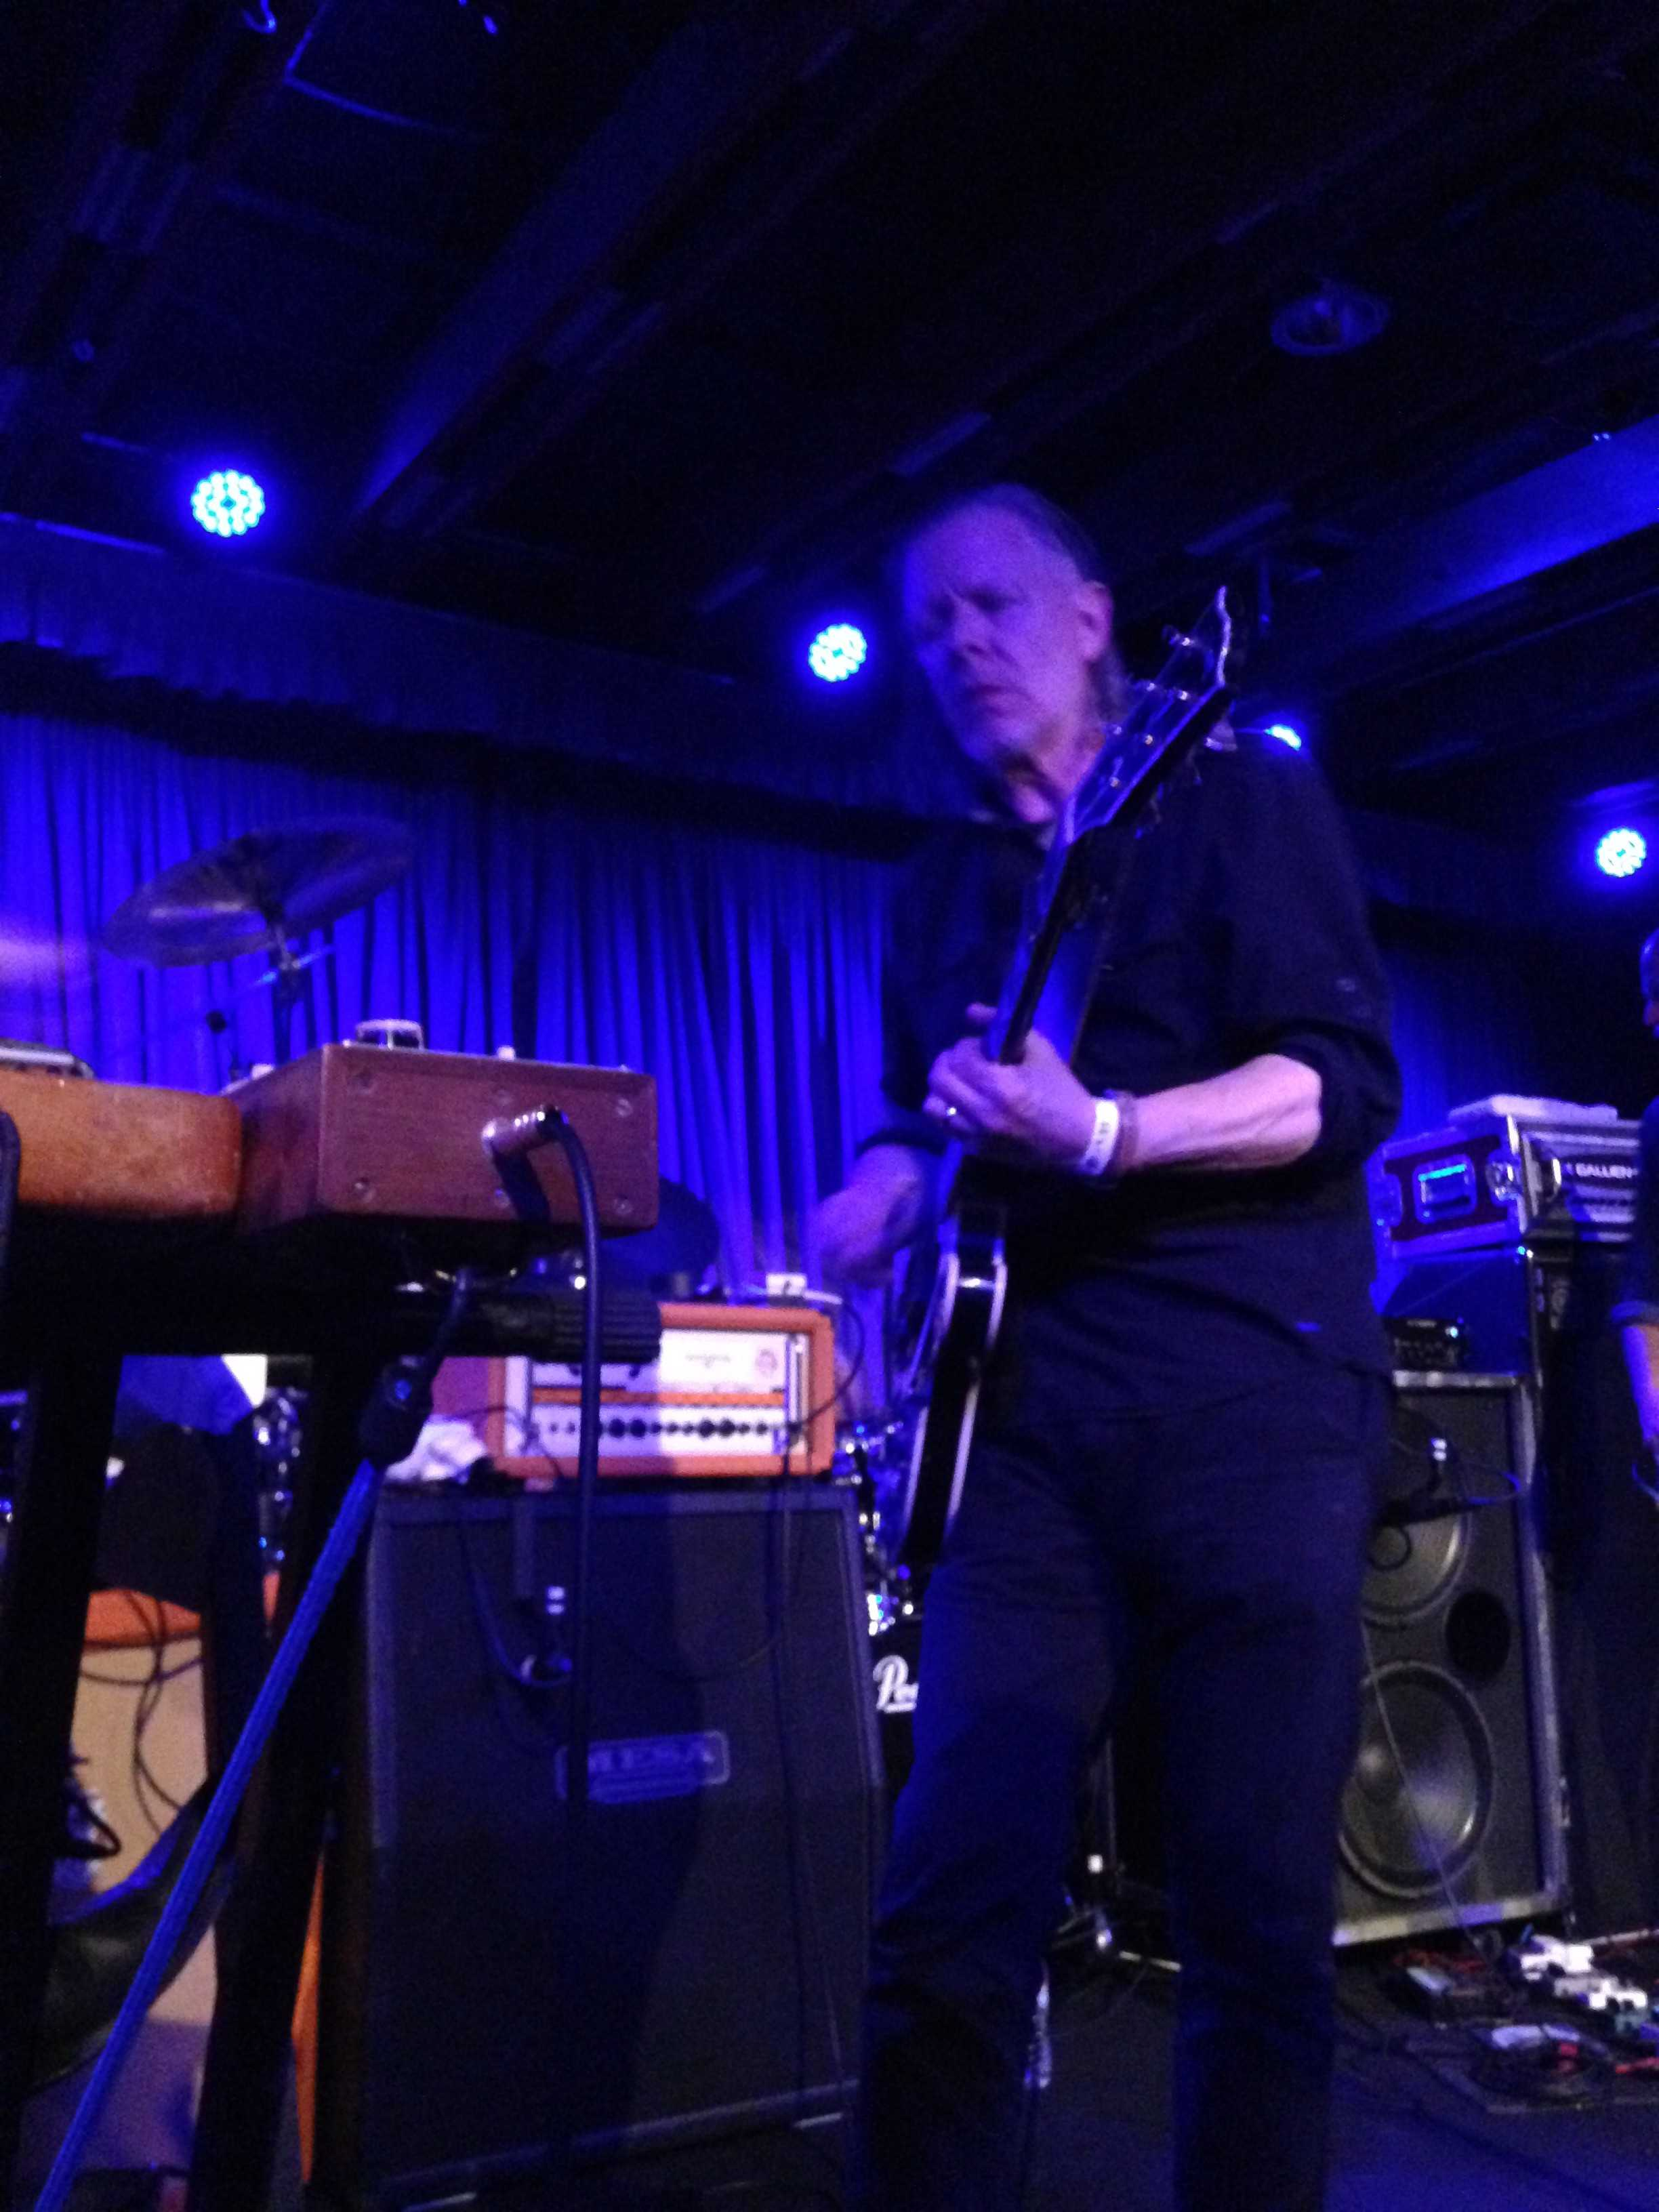 Guitarist and vocalist Michael Gira performs during Swans' April 13 concert at Phoenix's Crescent Ballroom.